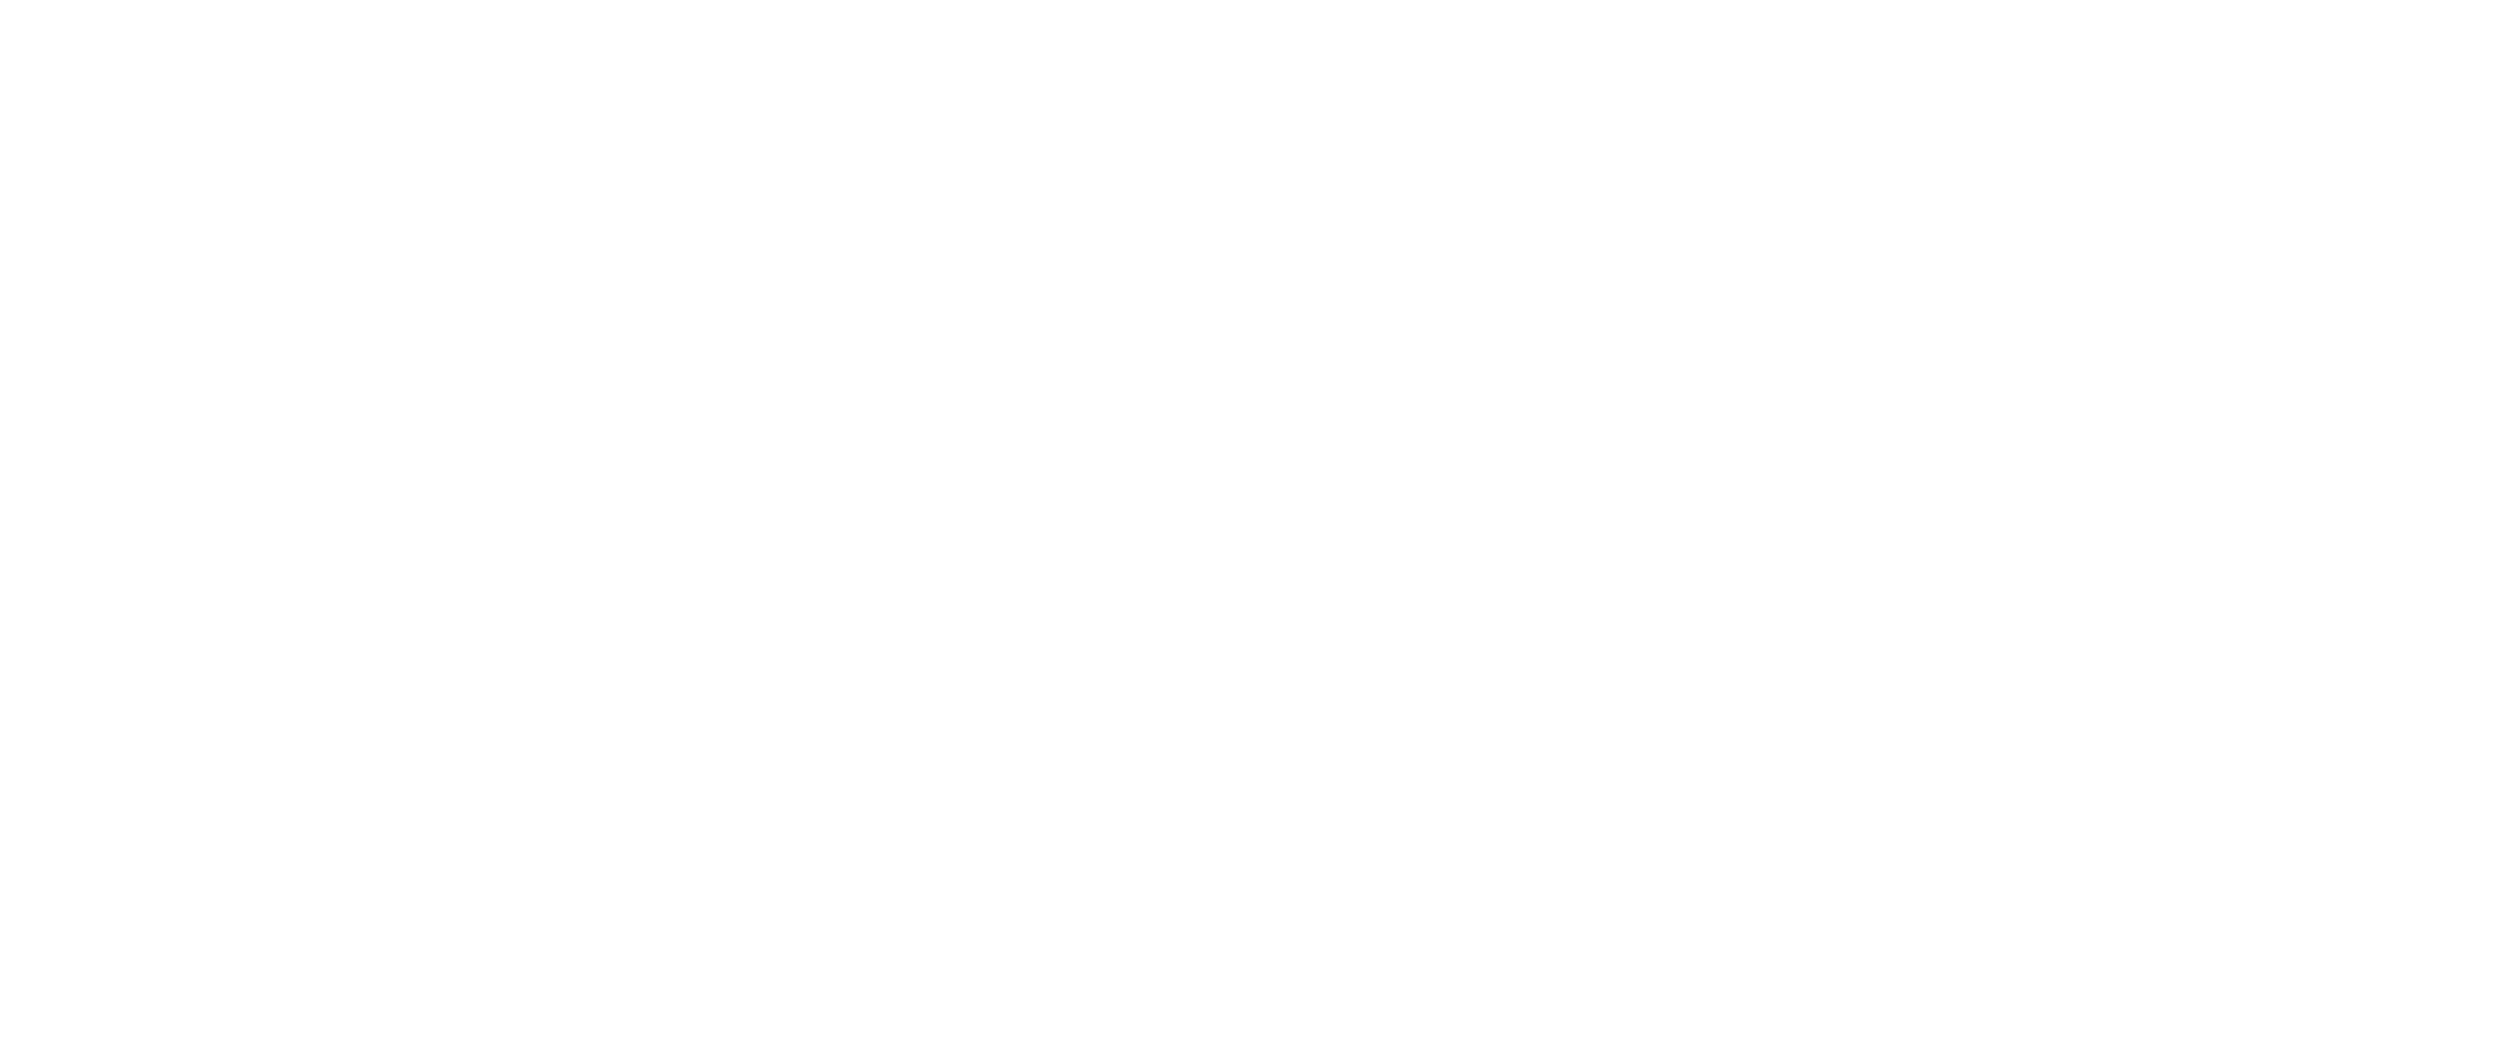 Wei chi is the vital energy of our immune system. It responds to our emotions. Incdrease your wei chi with rich human relationships.